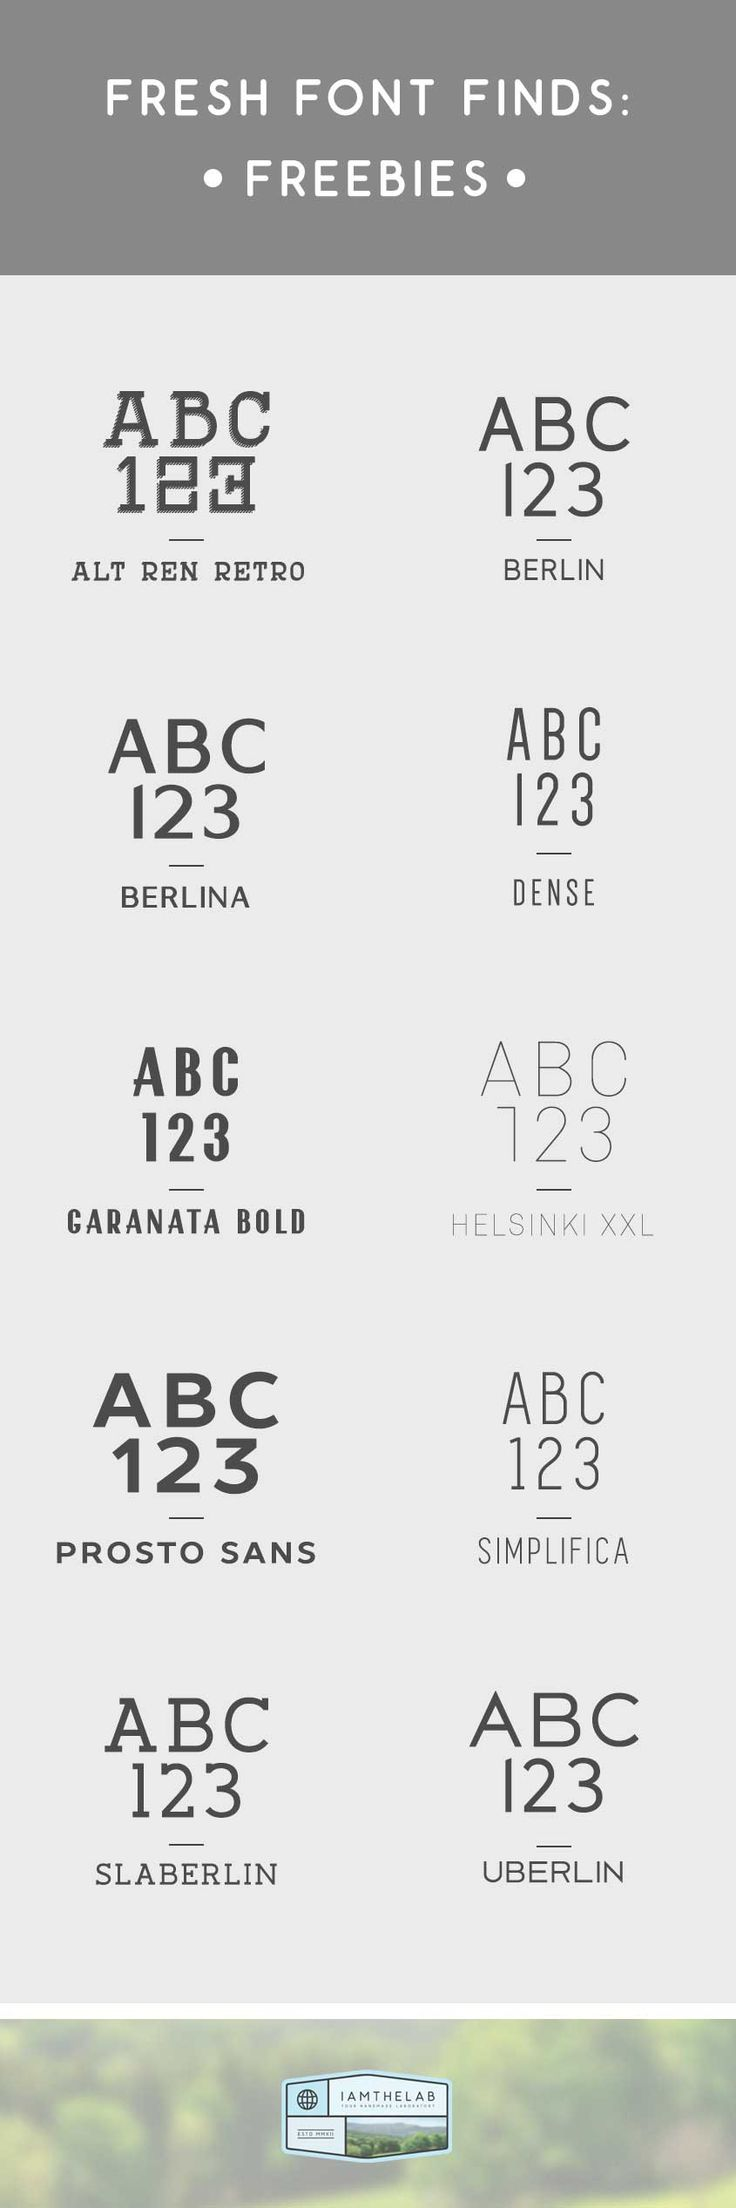 #Free fonts! Love these simple, modern styles